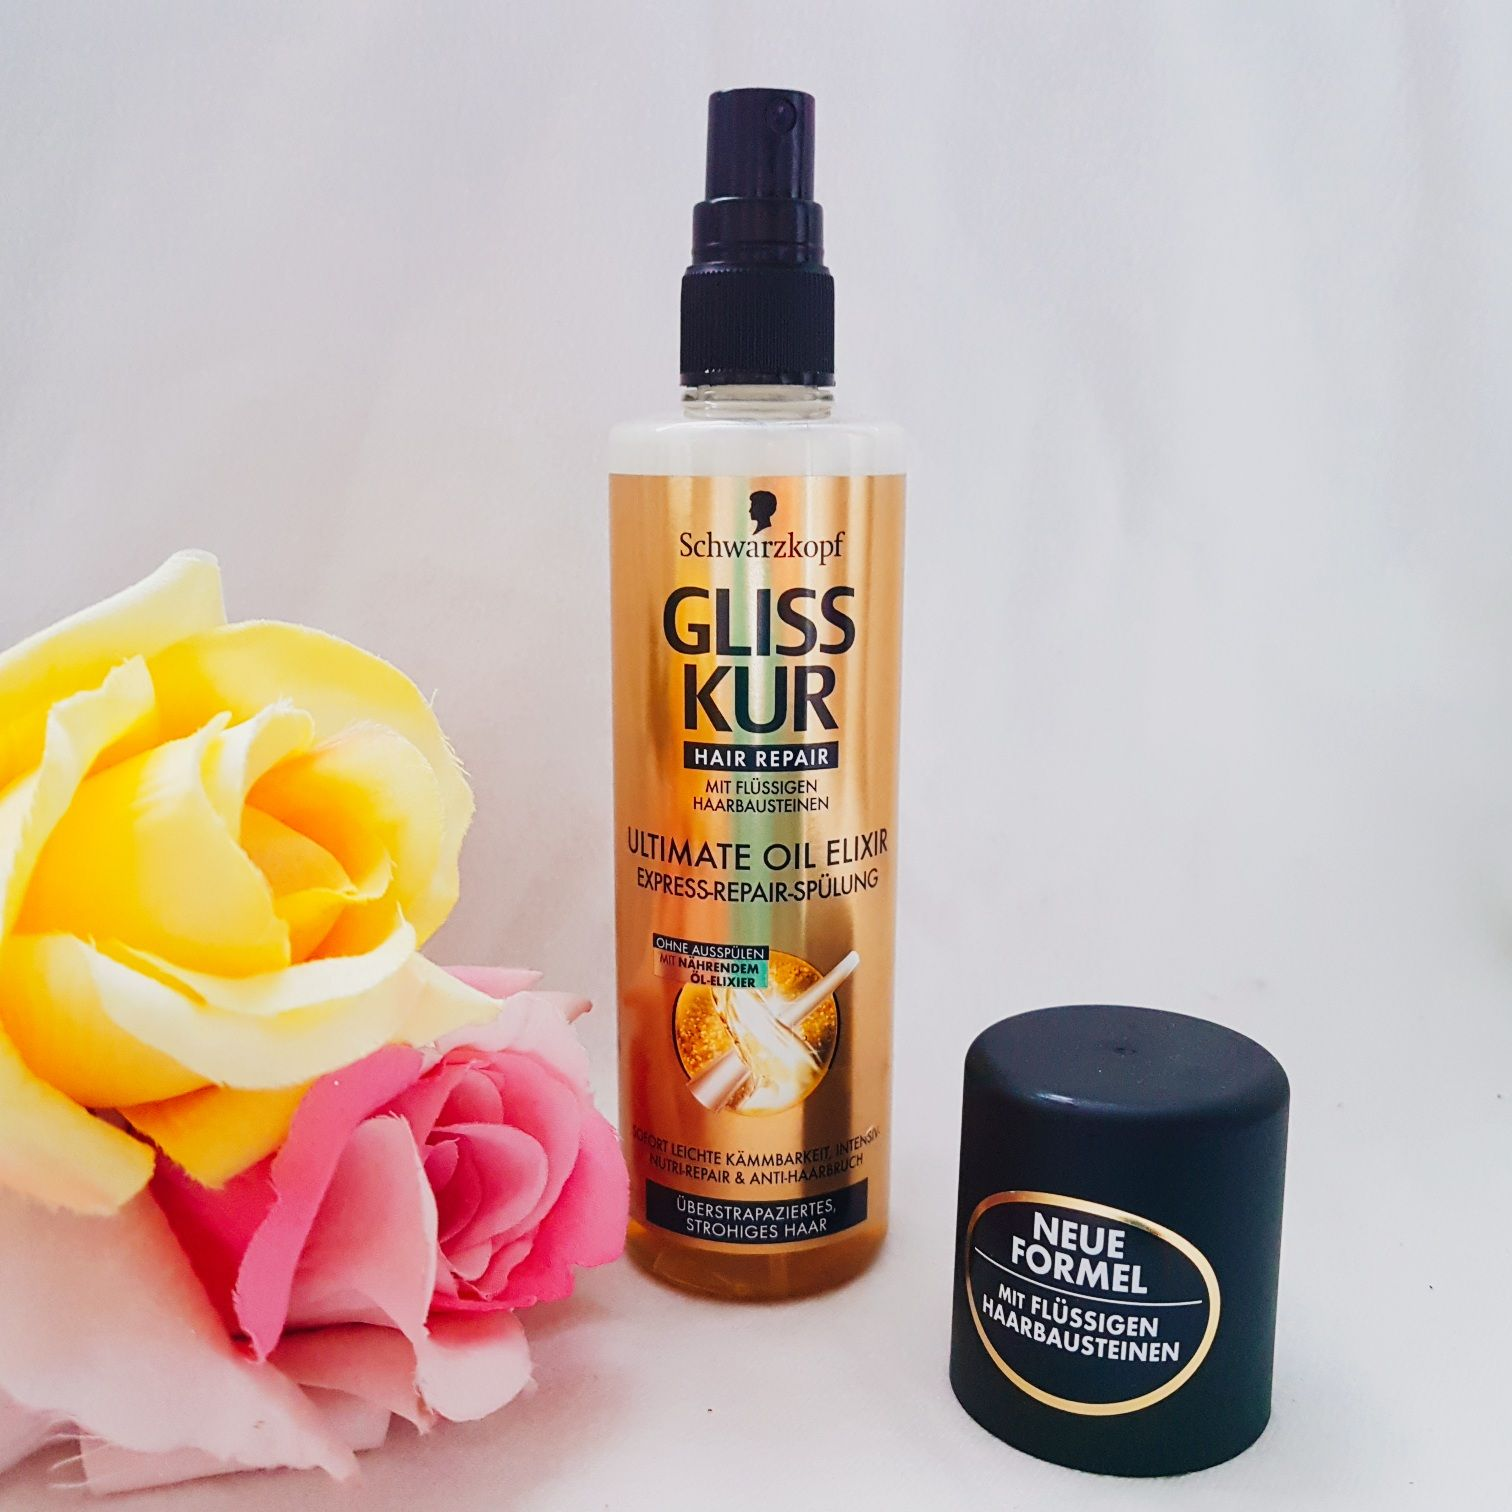 Gliss Kur Hair Repair Ultimate Oil Elixir Express-Repair-Spülung Erfahrung